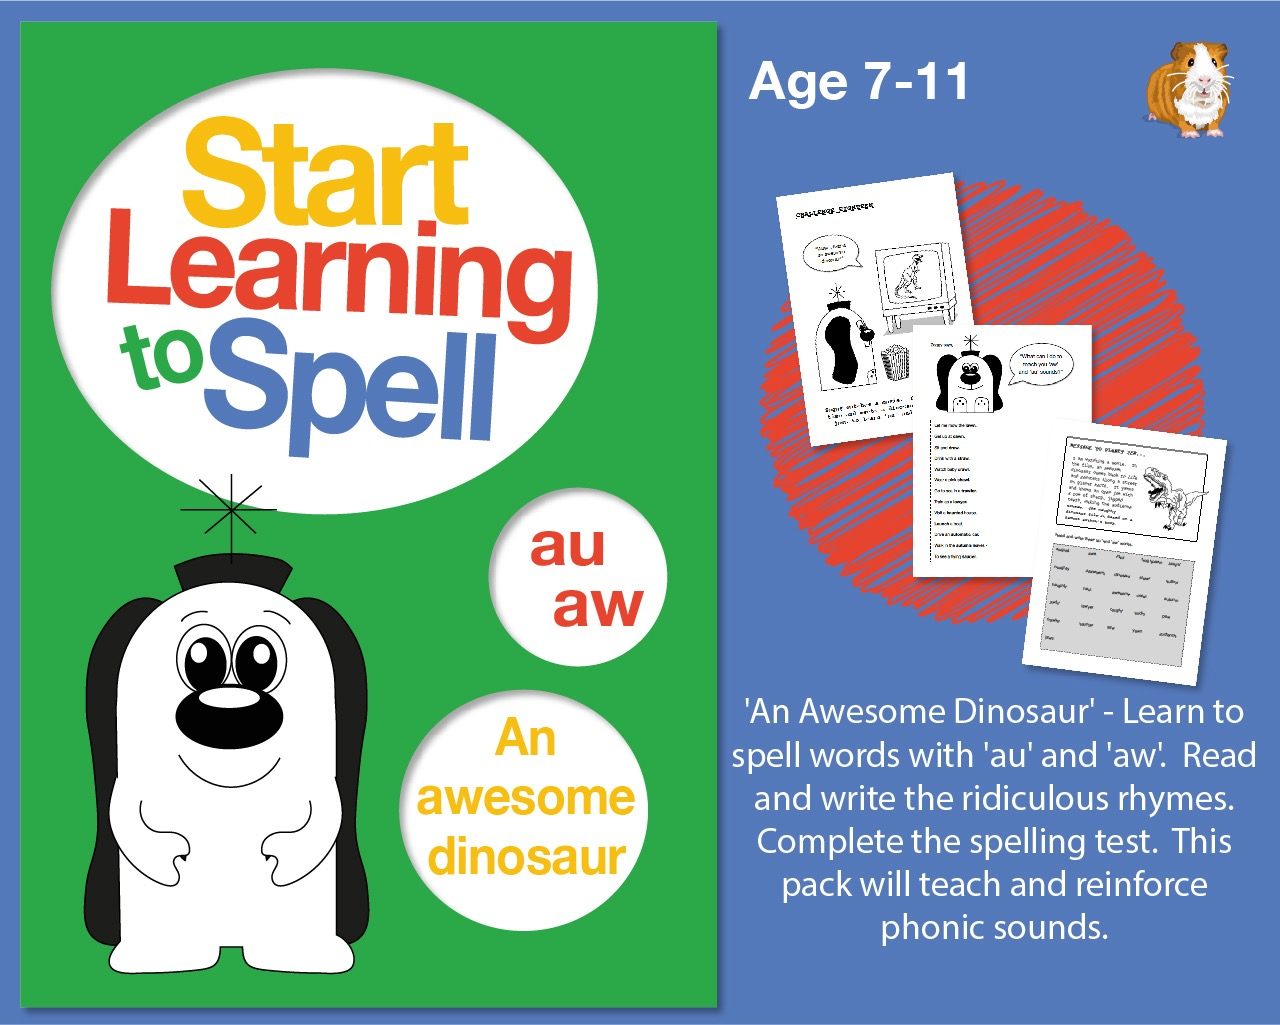 'An Awesome Dinosaur' Learn To Spell Words With 'au' and 'aw' (7-11 years)